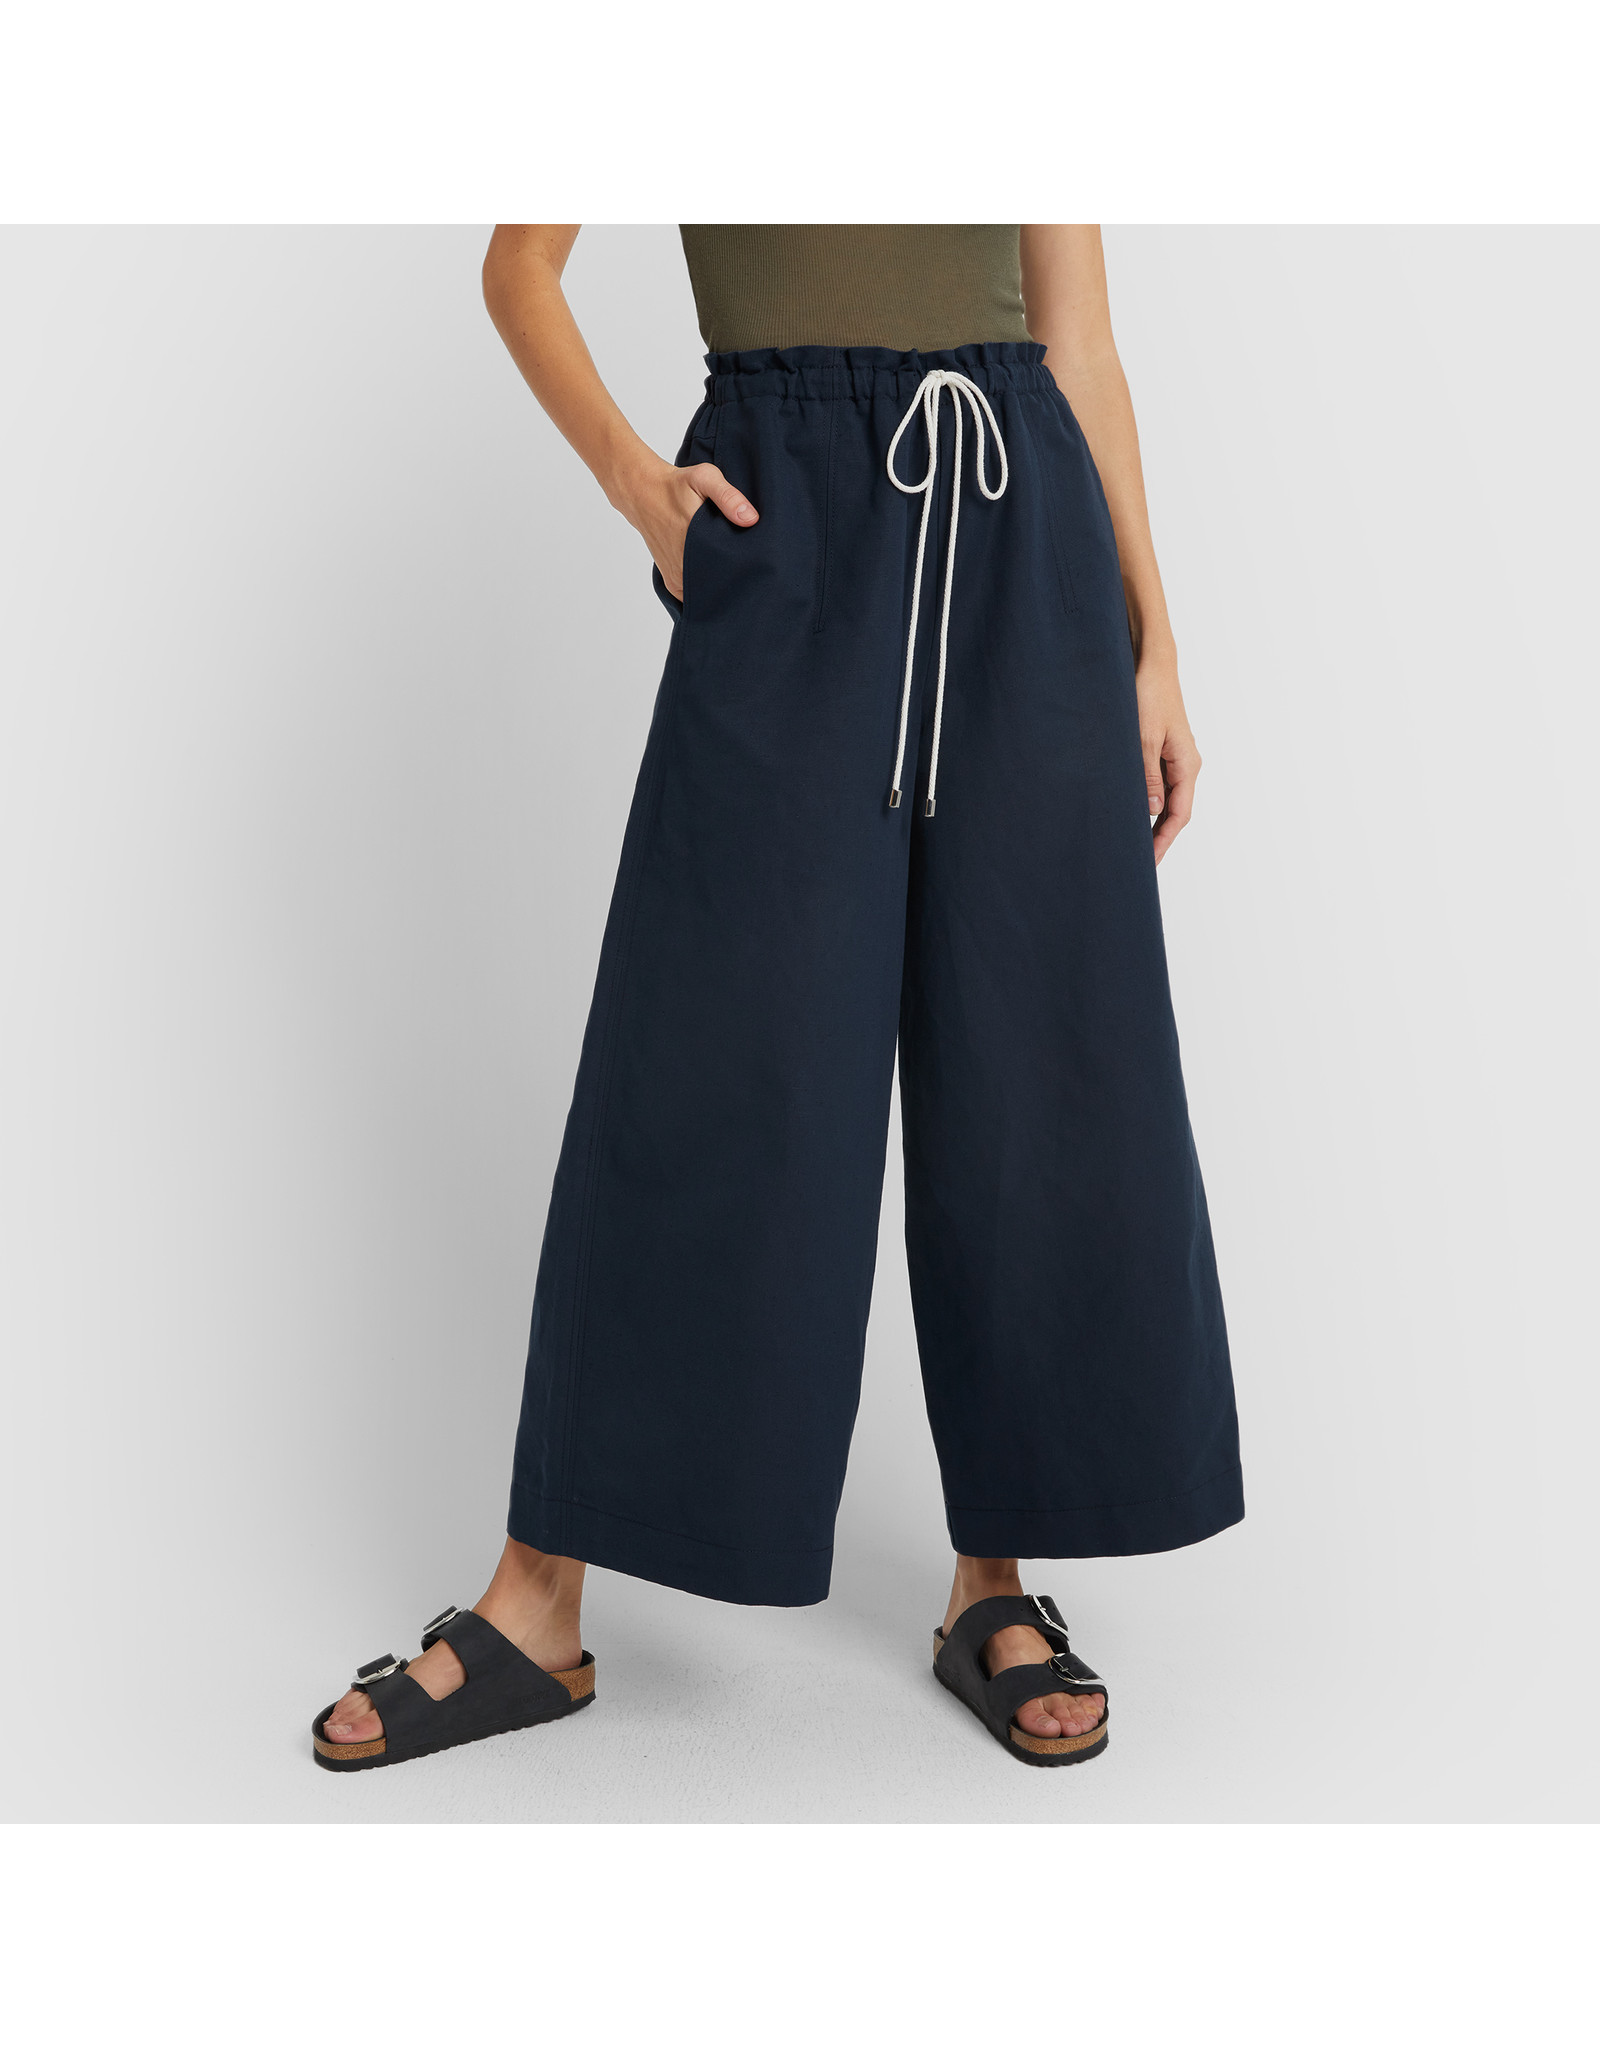 G. Label G. Label Dani Wide Leg Drawstring Pant (Color: Navy, Size: 2)